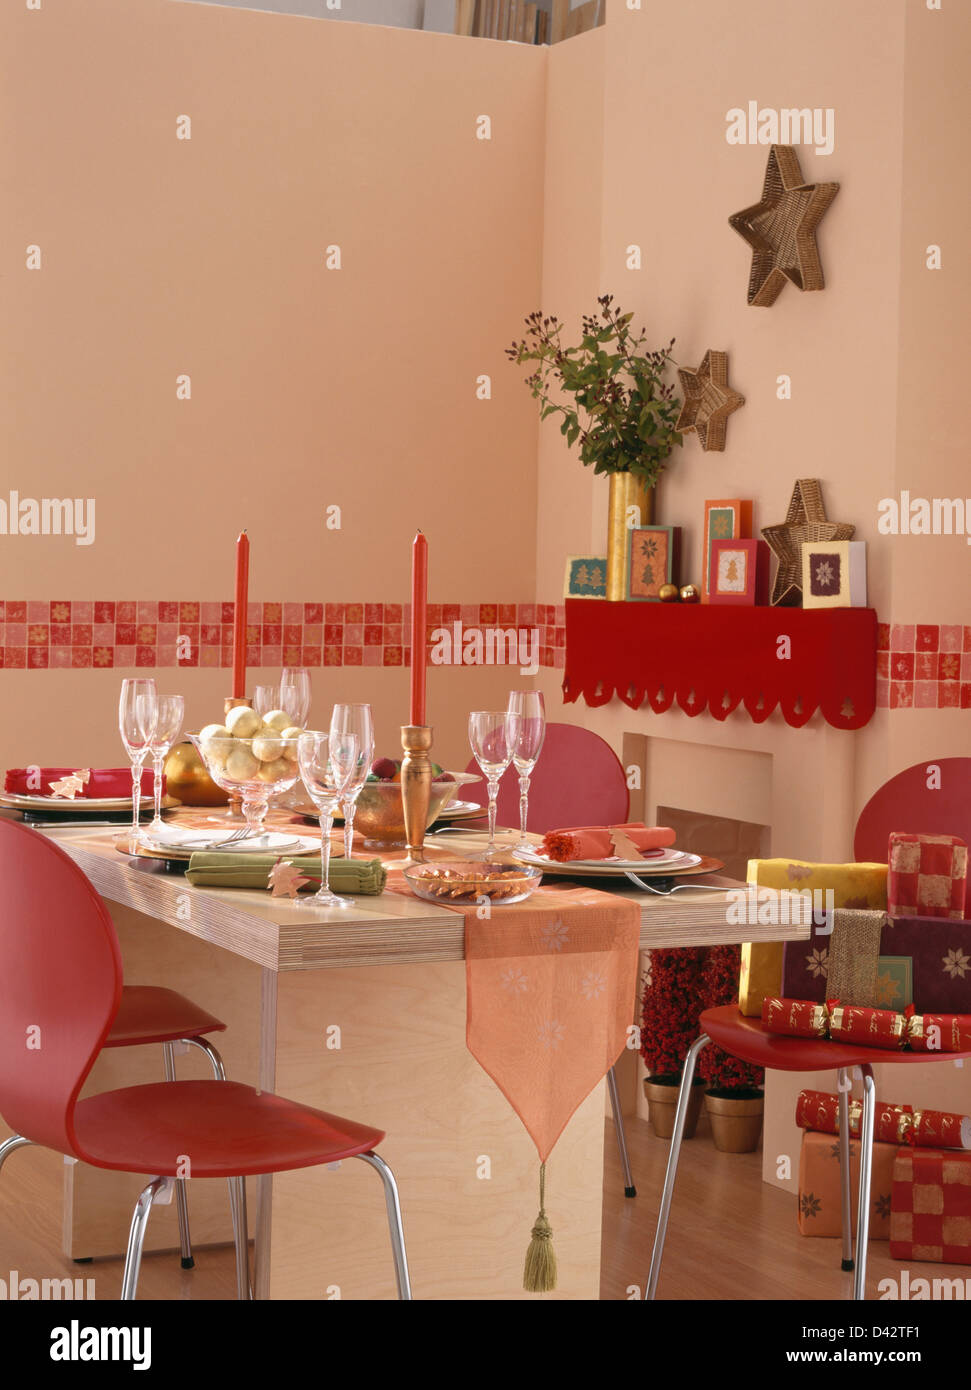 Red Chairs At Simple Table Set For Christmas Dinner In Economy Style Stock Photo Alamy